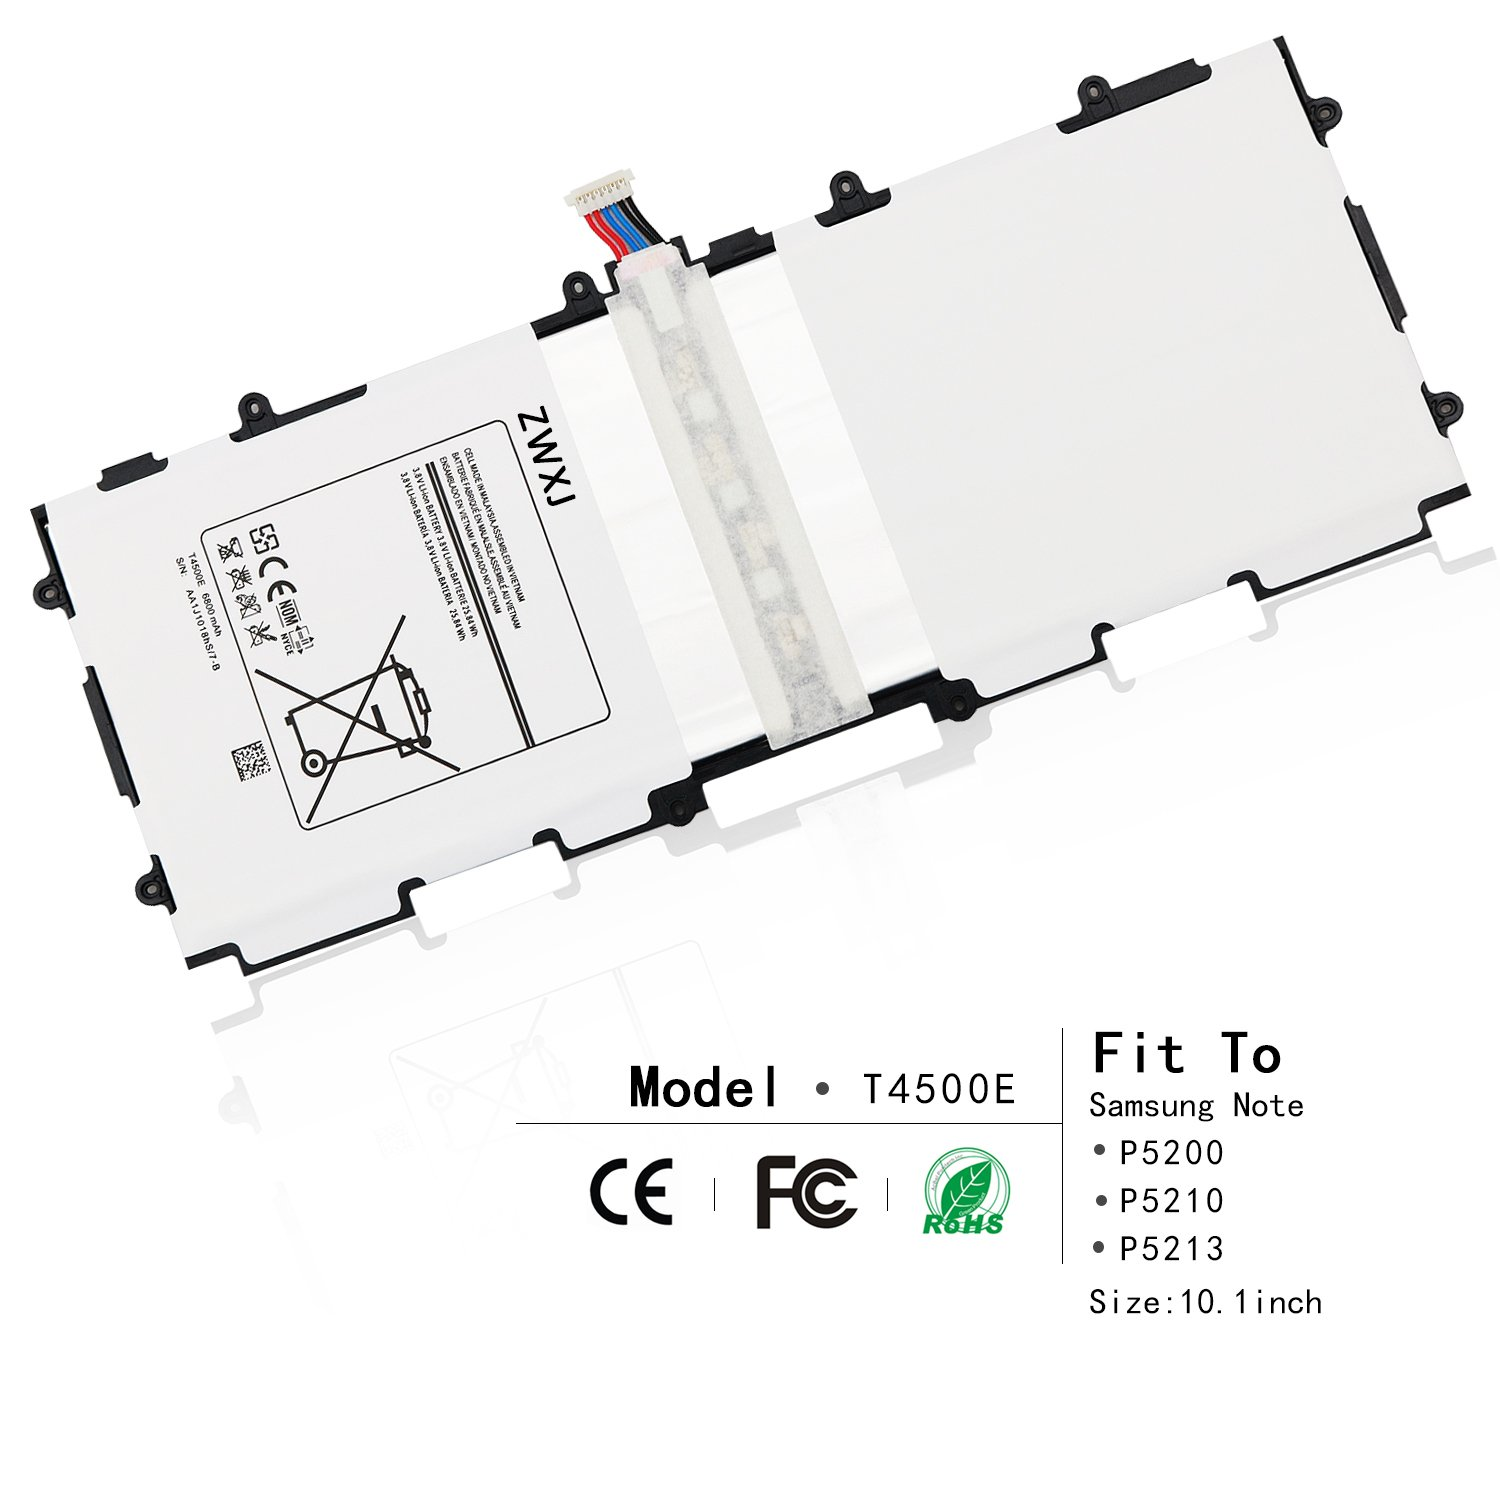 ZWXJ Li-ion Battery T4500E(3.8V 6600MAH) For Samsung Note Tablet Tab 3 10.1'' P5200 P5210 P5213 GT-P5200 GT-P5210 GT-P5220 GT-P5213